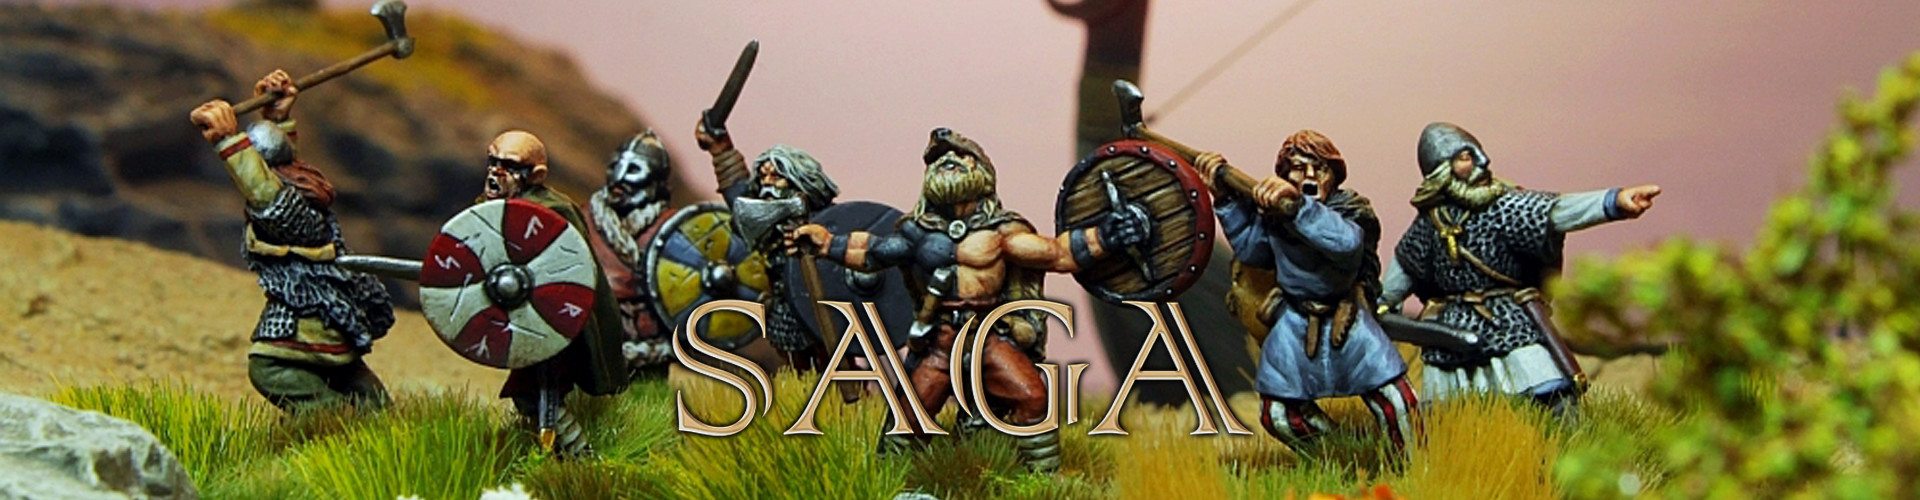 DEMO 06 SAGA - Demospiele: SAGA